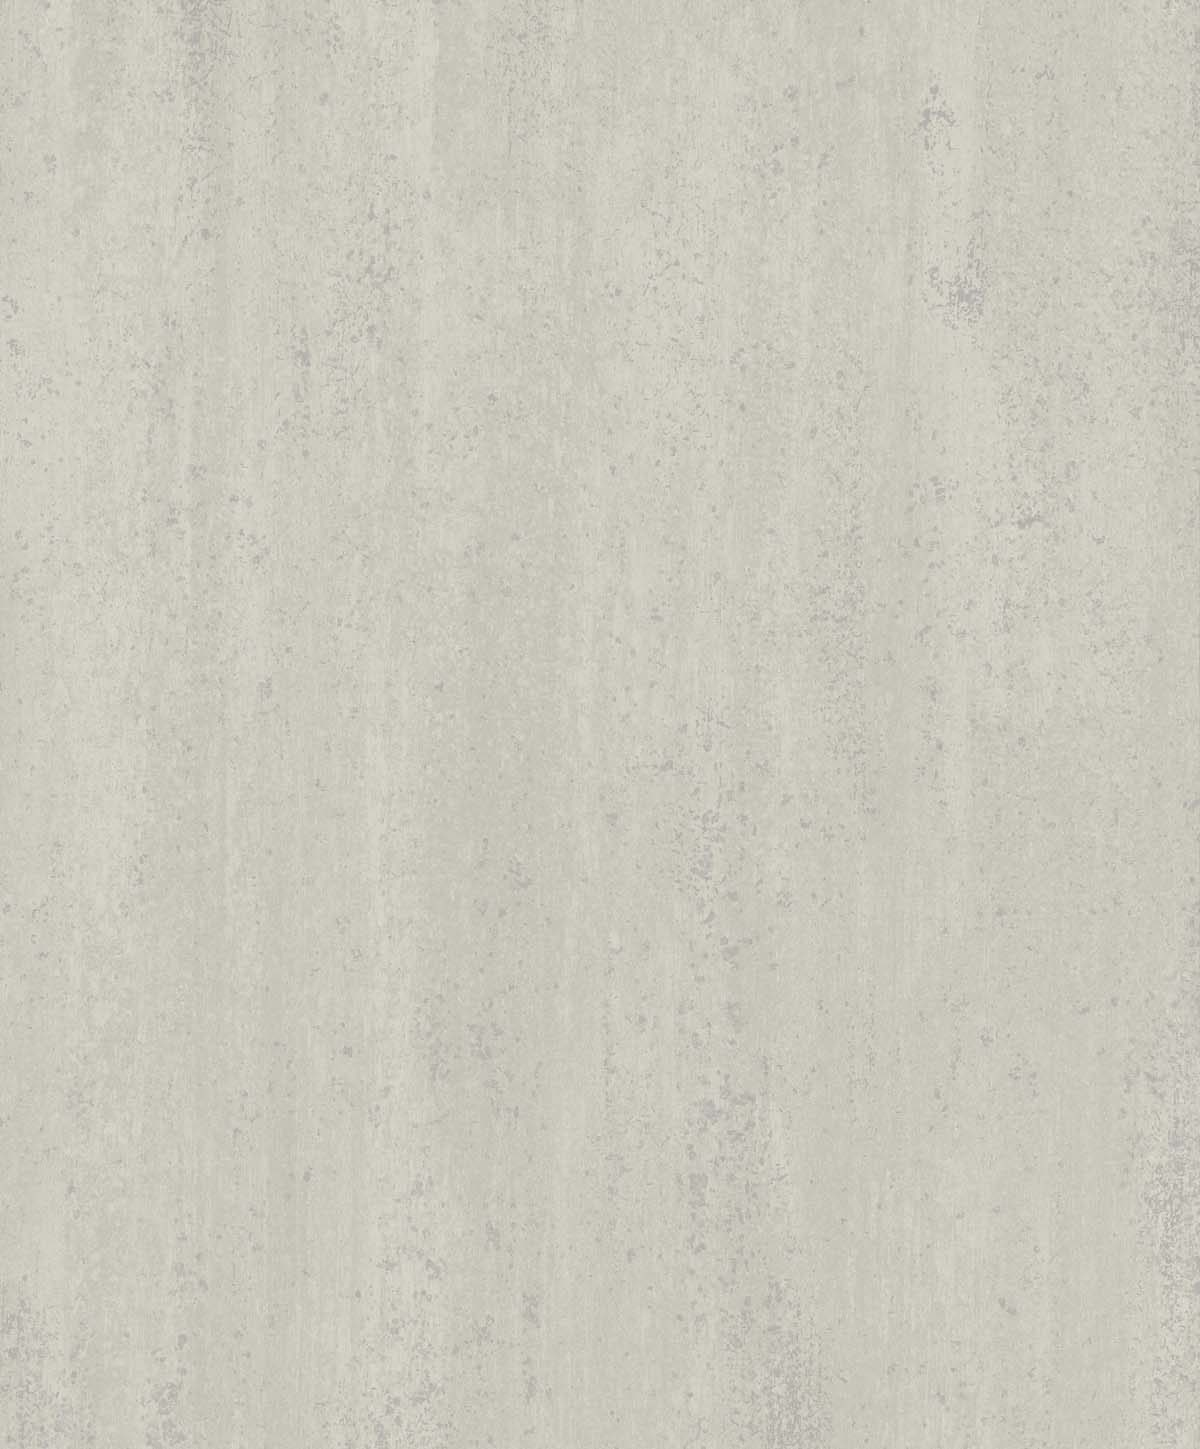 Sahara-wallpaper-amara-SH00605